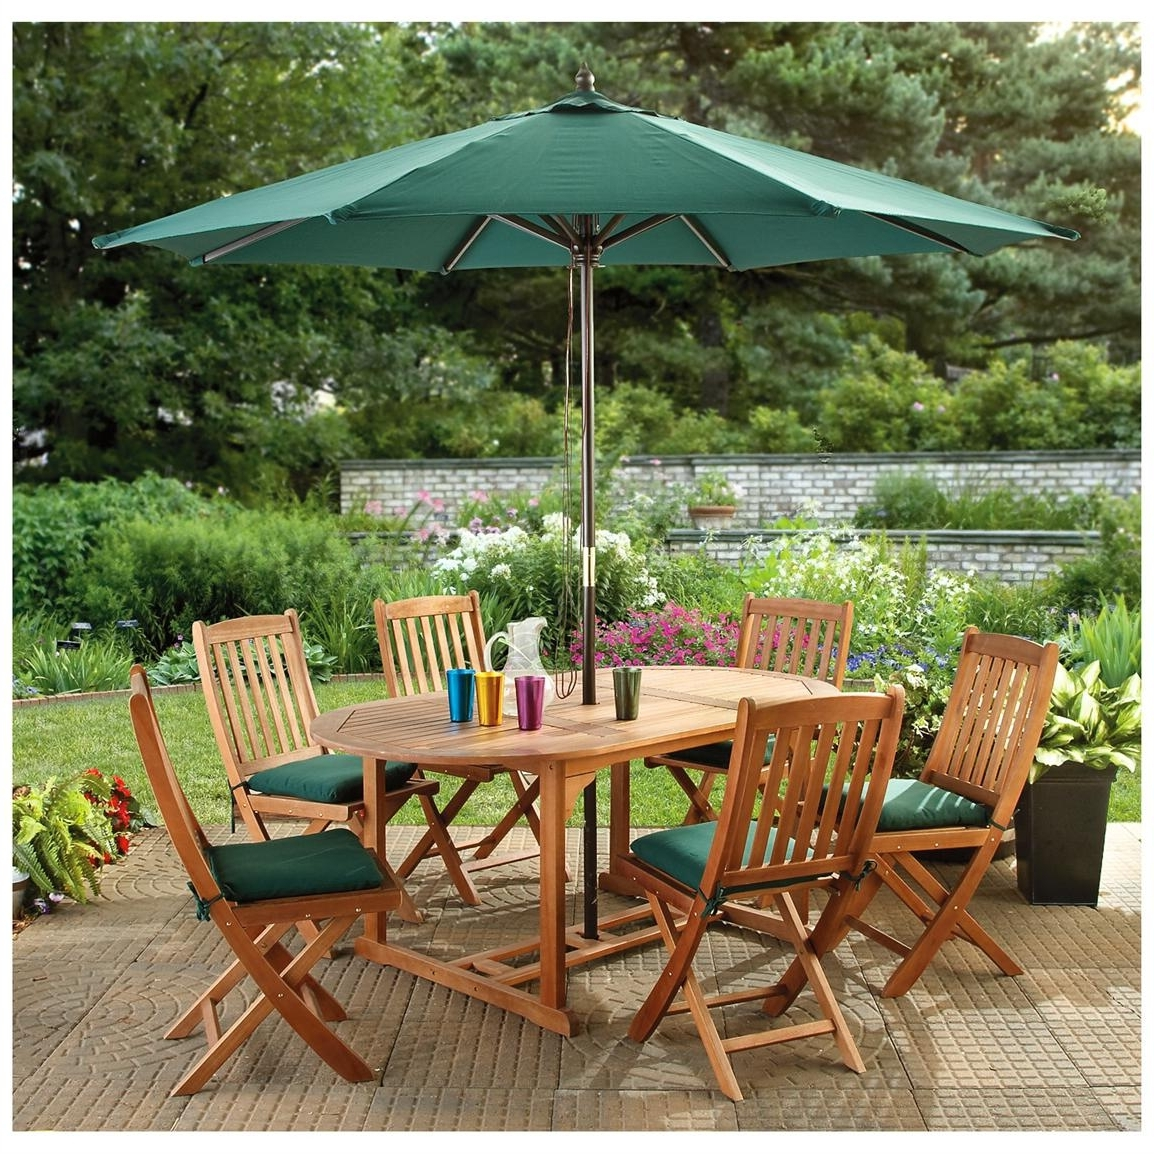 Well Known Patio Dining Umbrellas In Patio: Awesome Umbrella Patio Set Frontgate Outdoor Furniture (View 17 of 20)